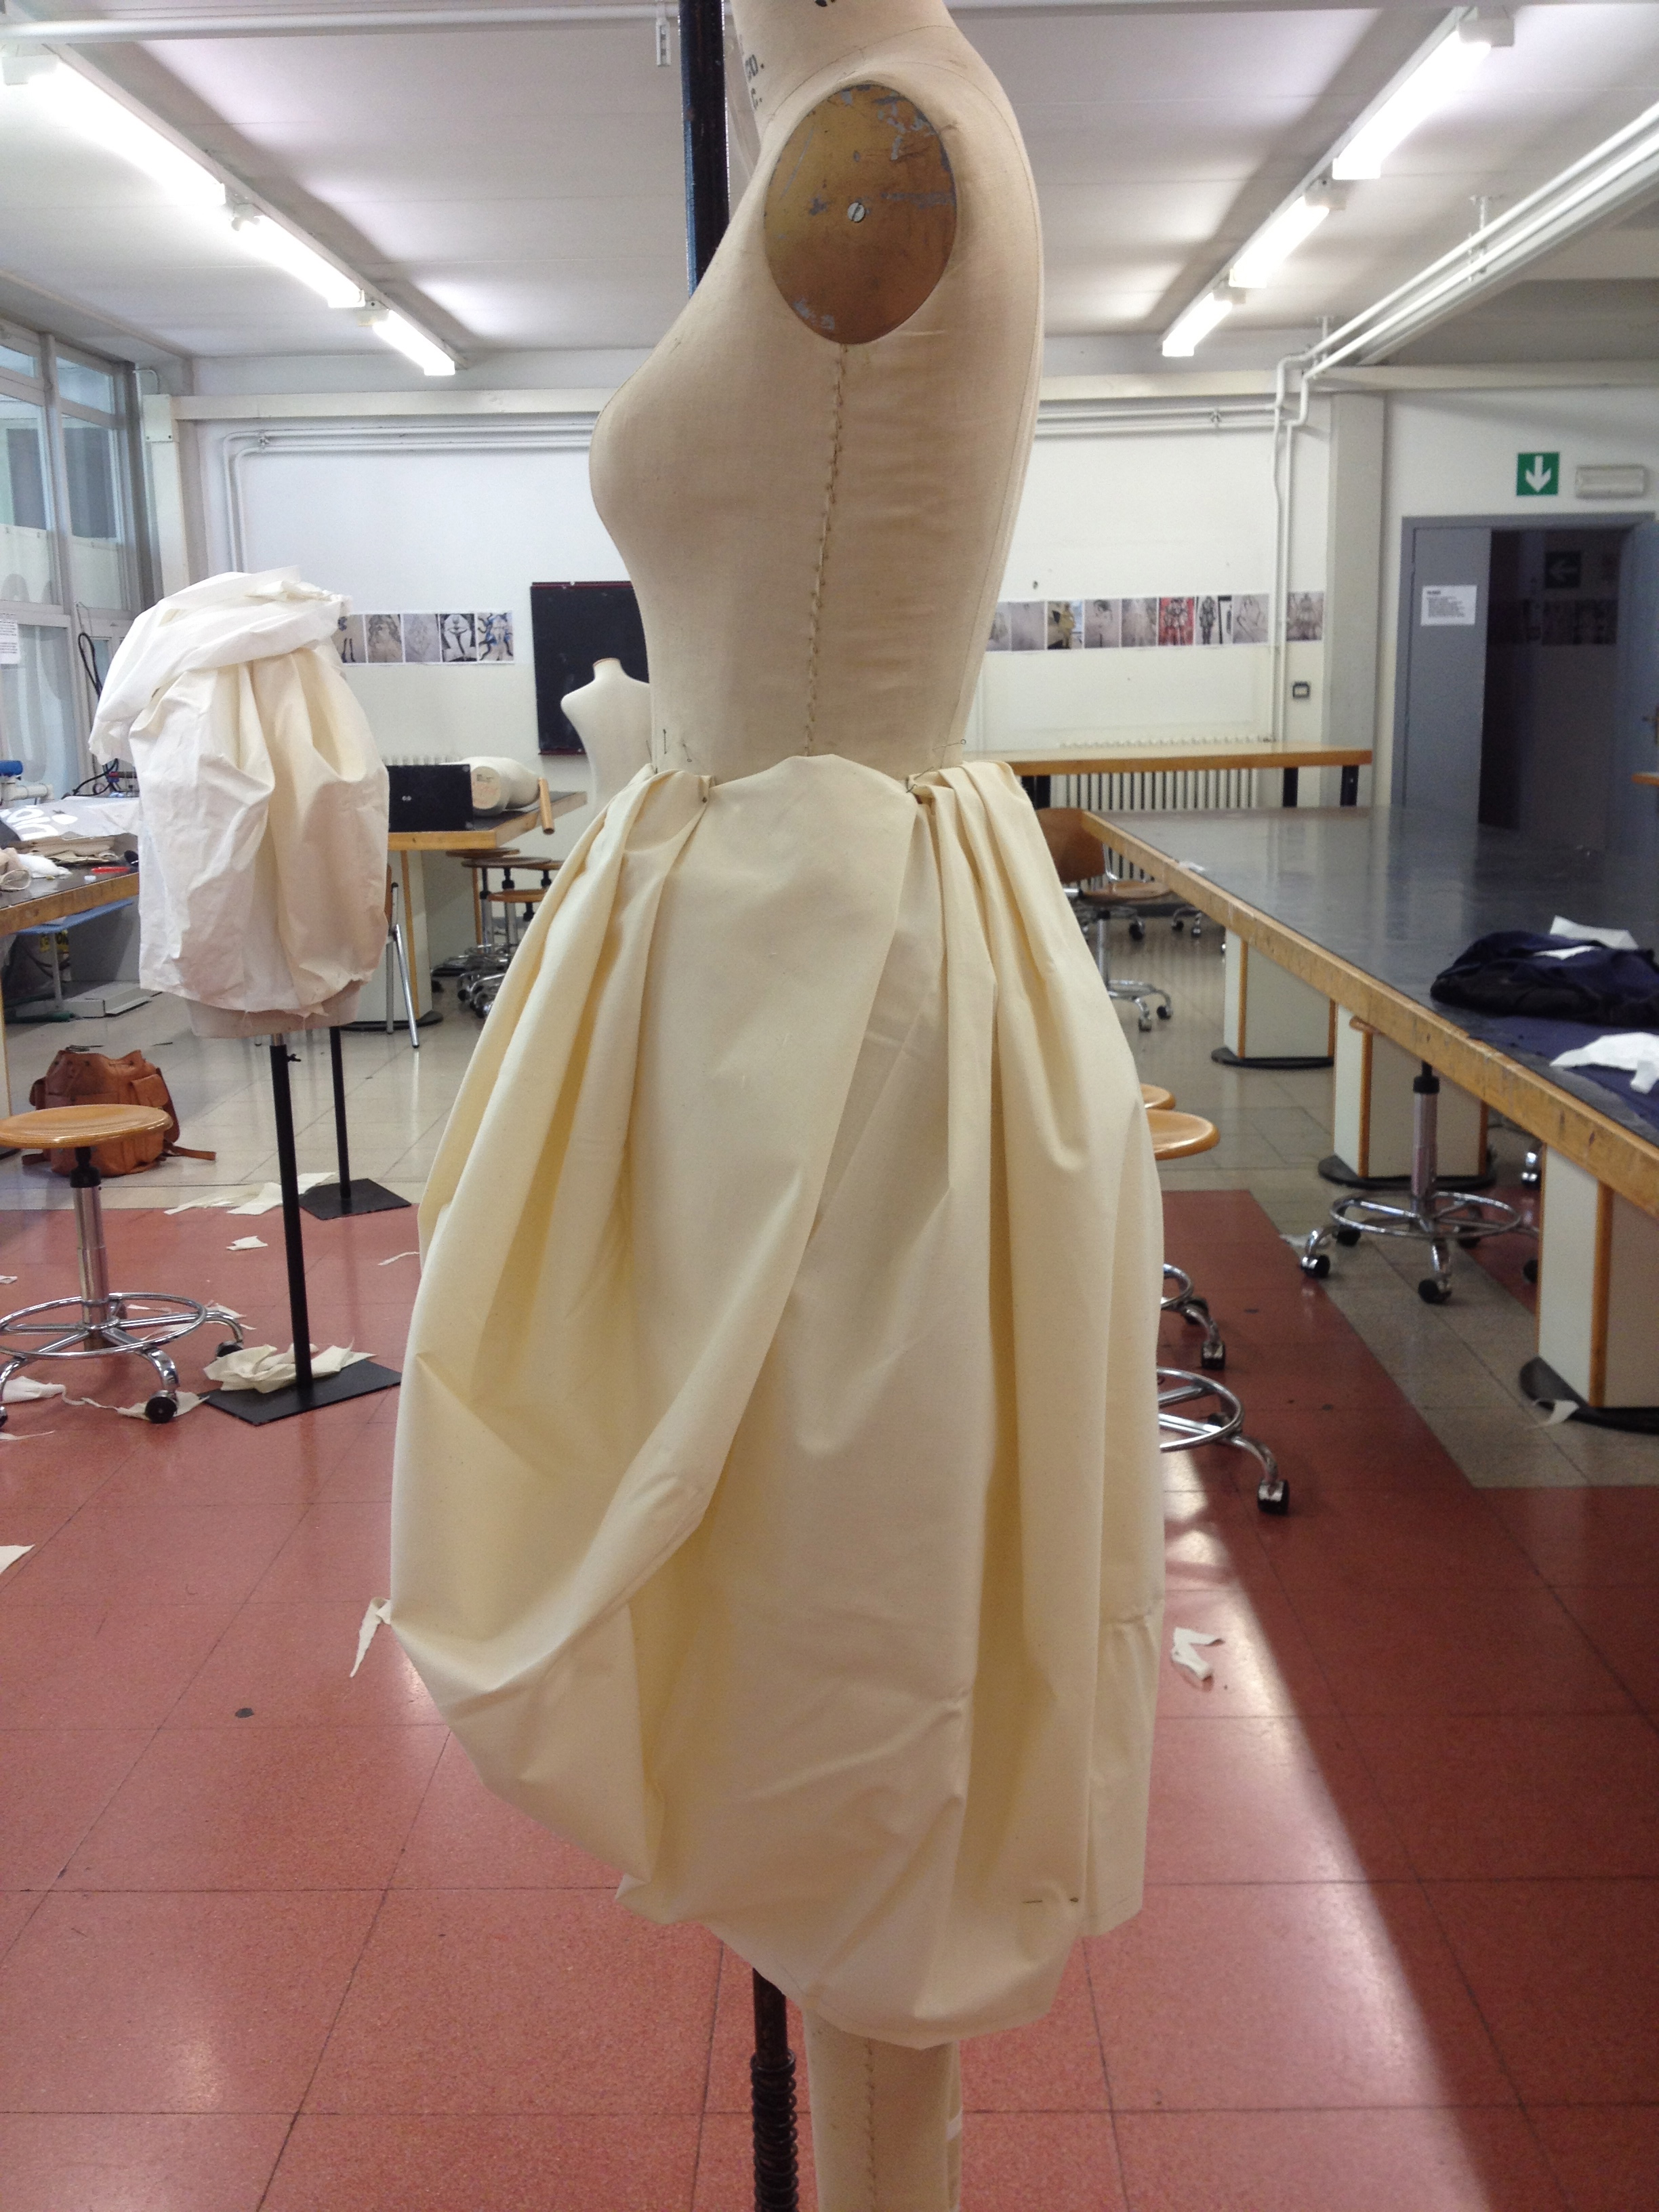 Working on the collection, Polimoda school, Florence